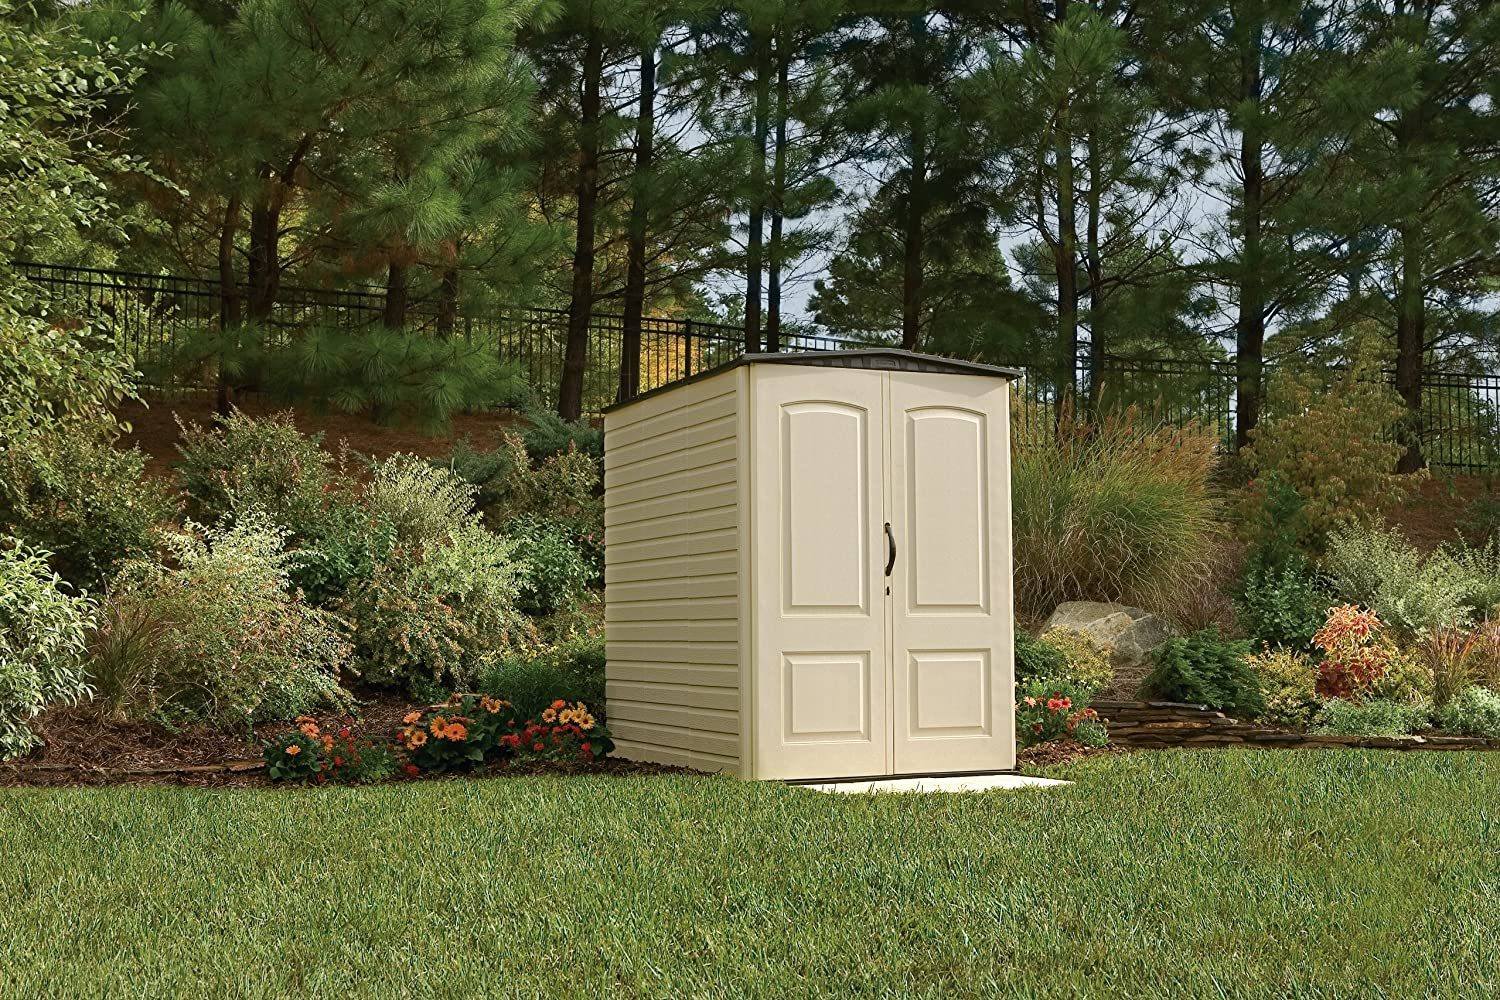 Rubbermaid Plastic Large Outdoor Storage Shed,159-Cubic